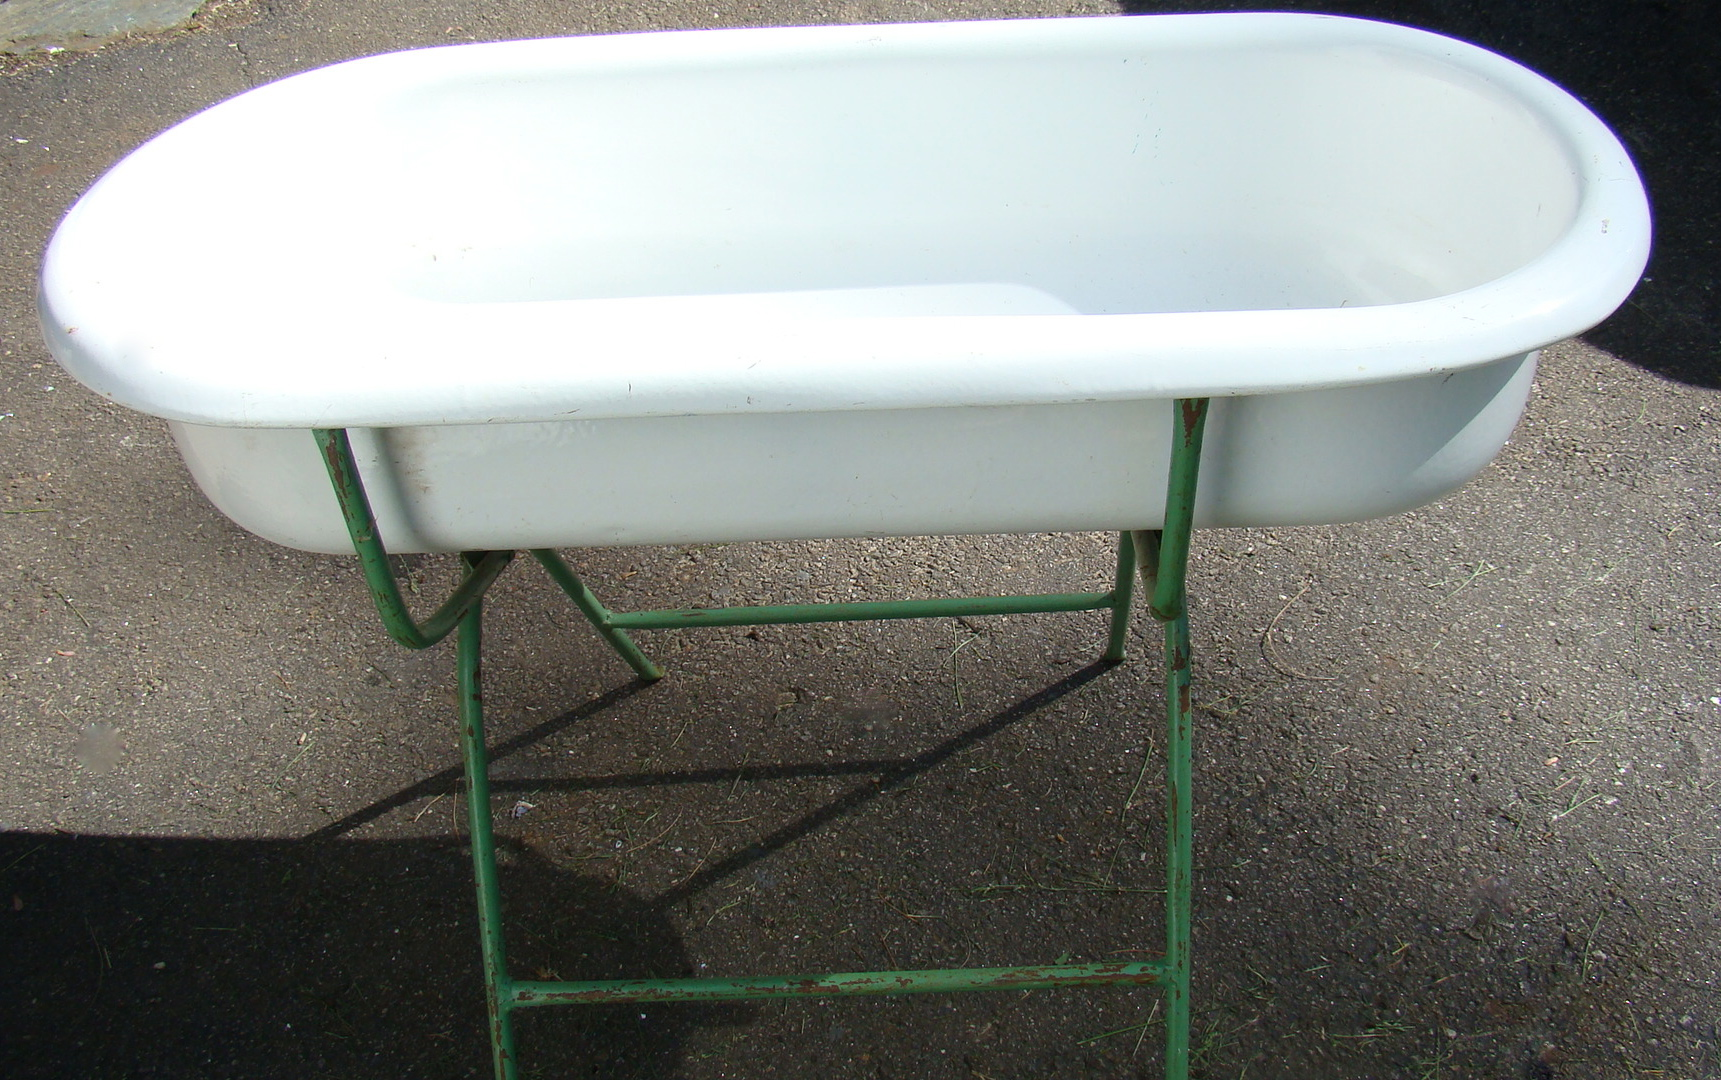 Vintage enamel cast iron tub on stand,great for raw bar or beverage tub$75 -